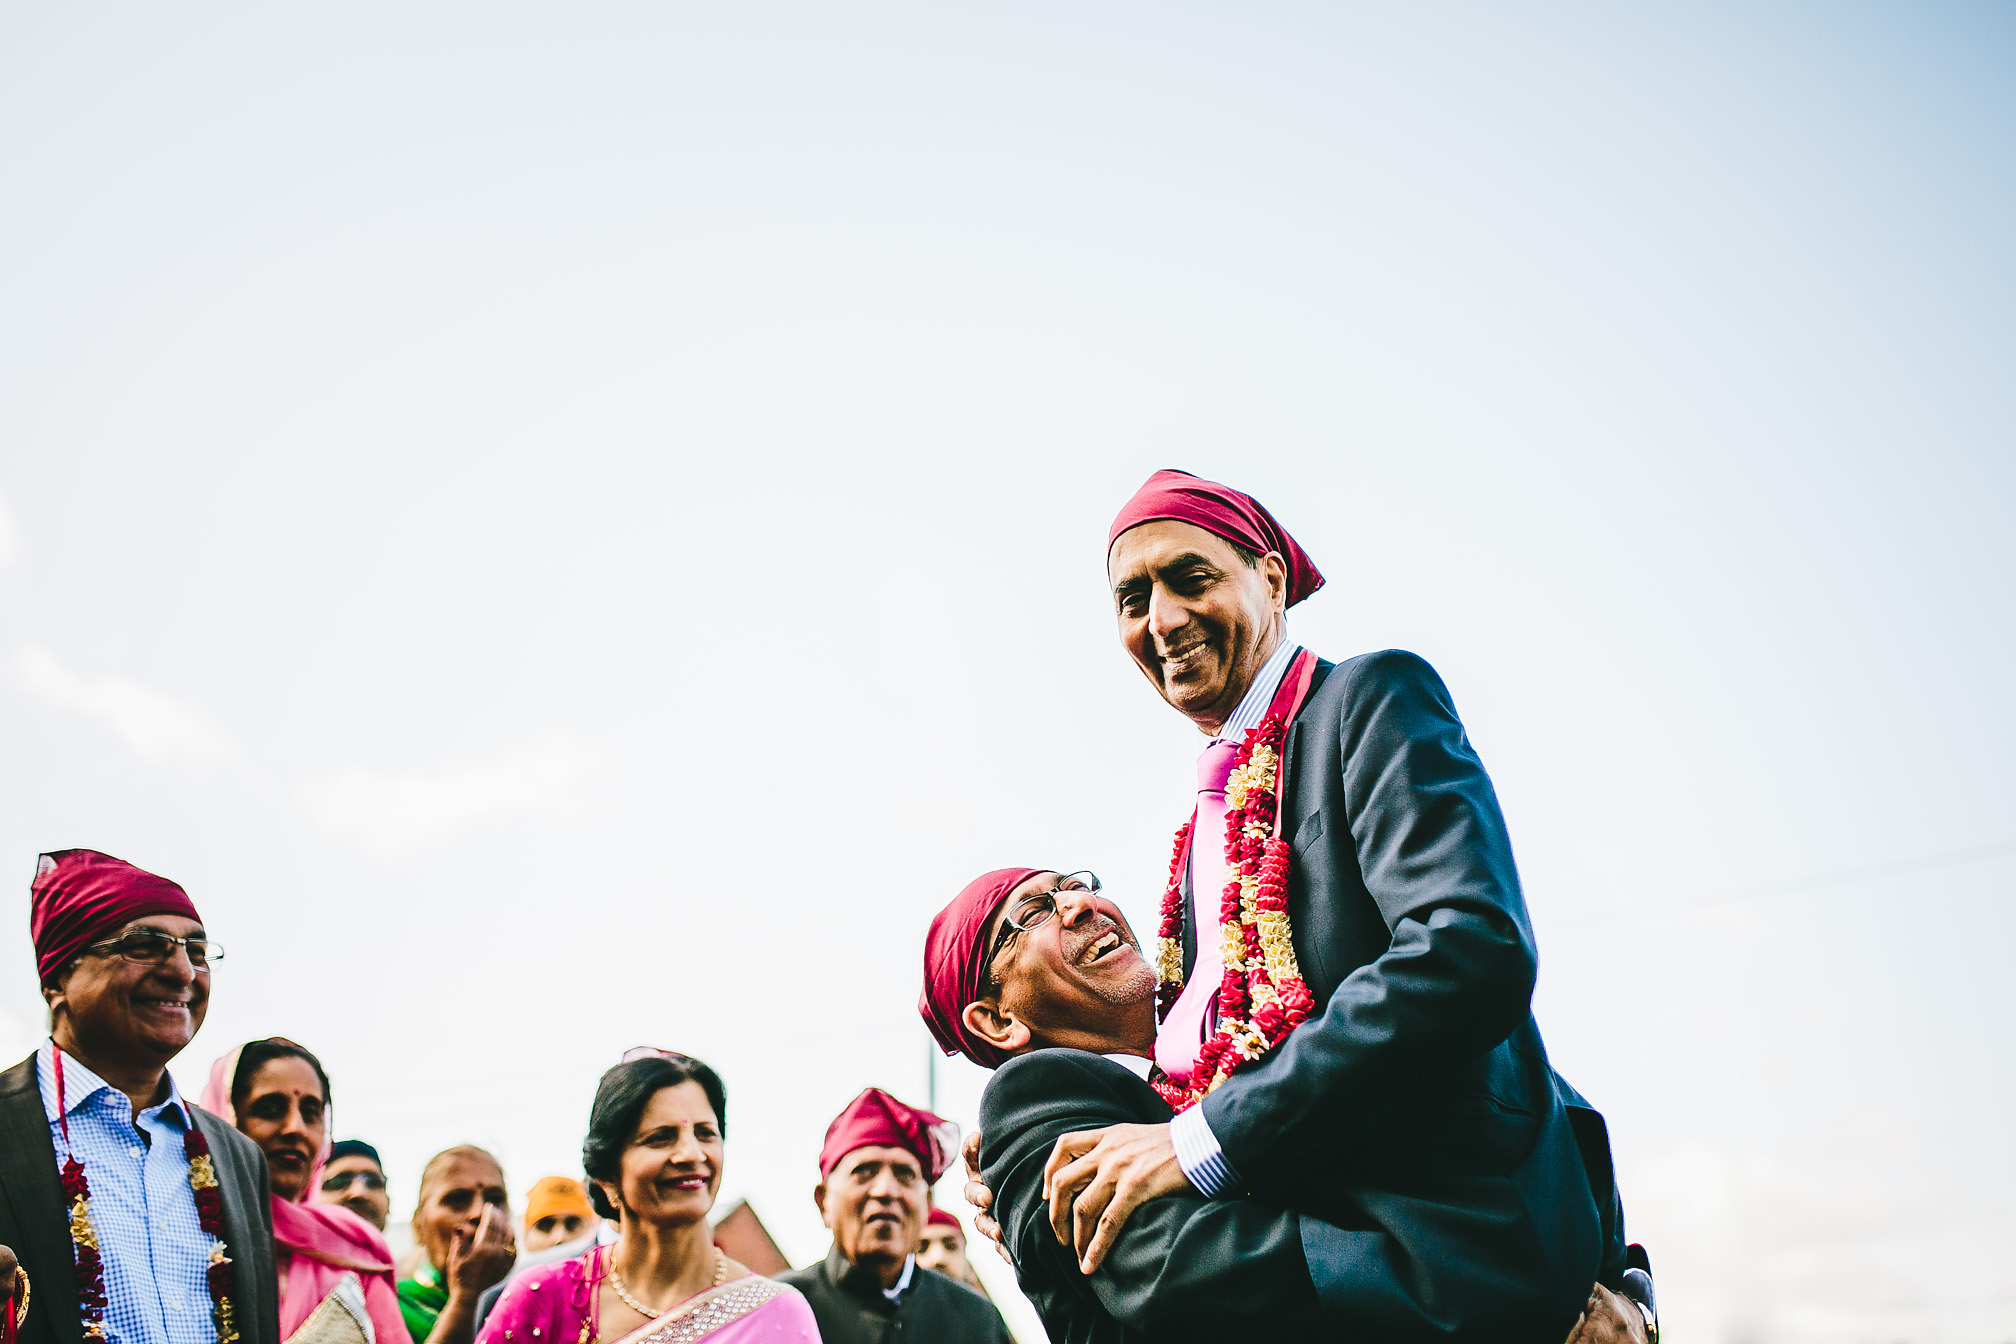 Sikh Wedding dancing